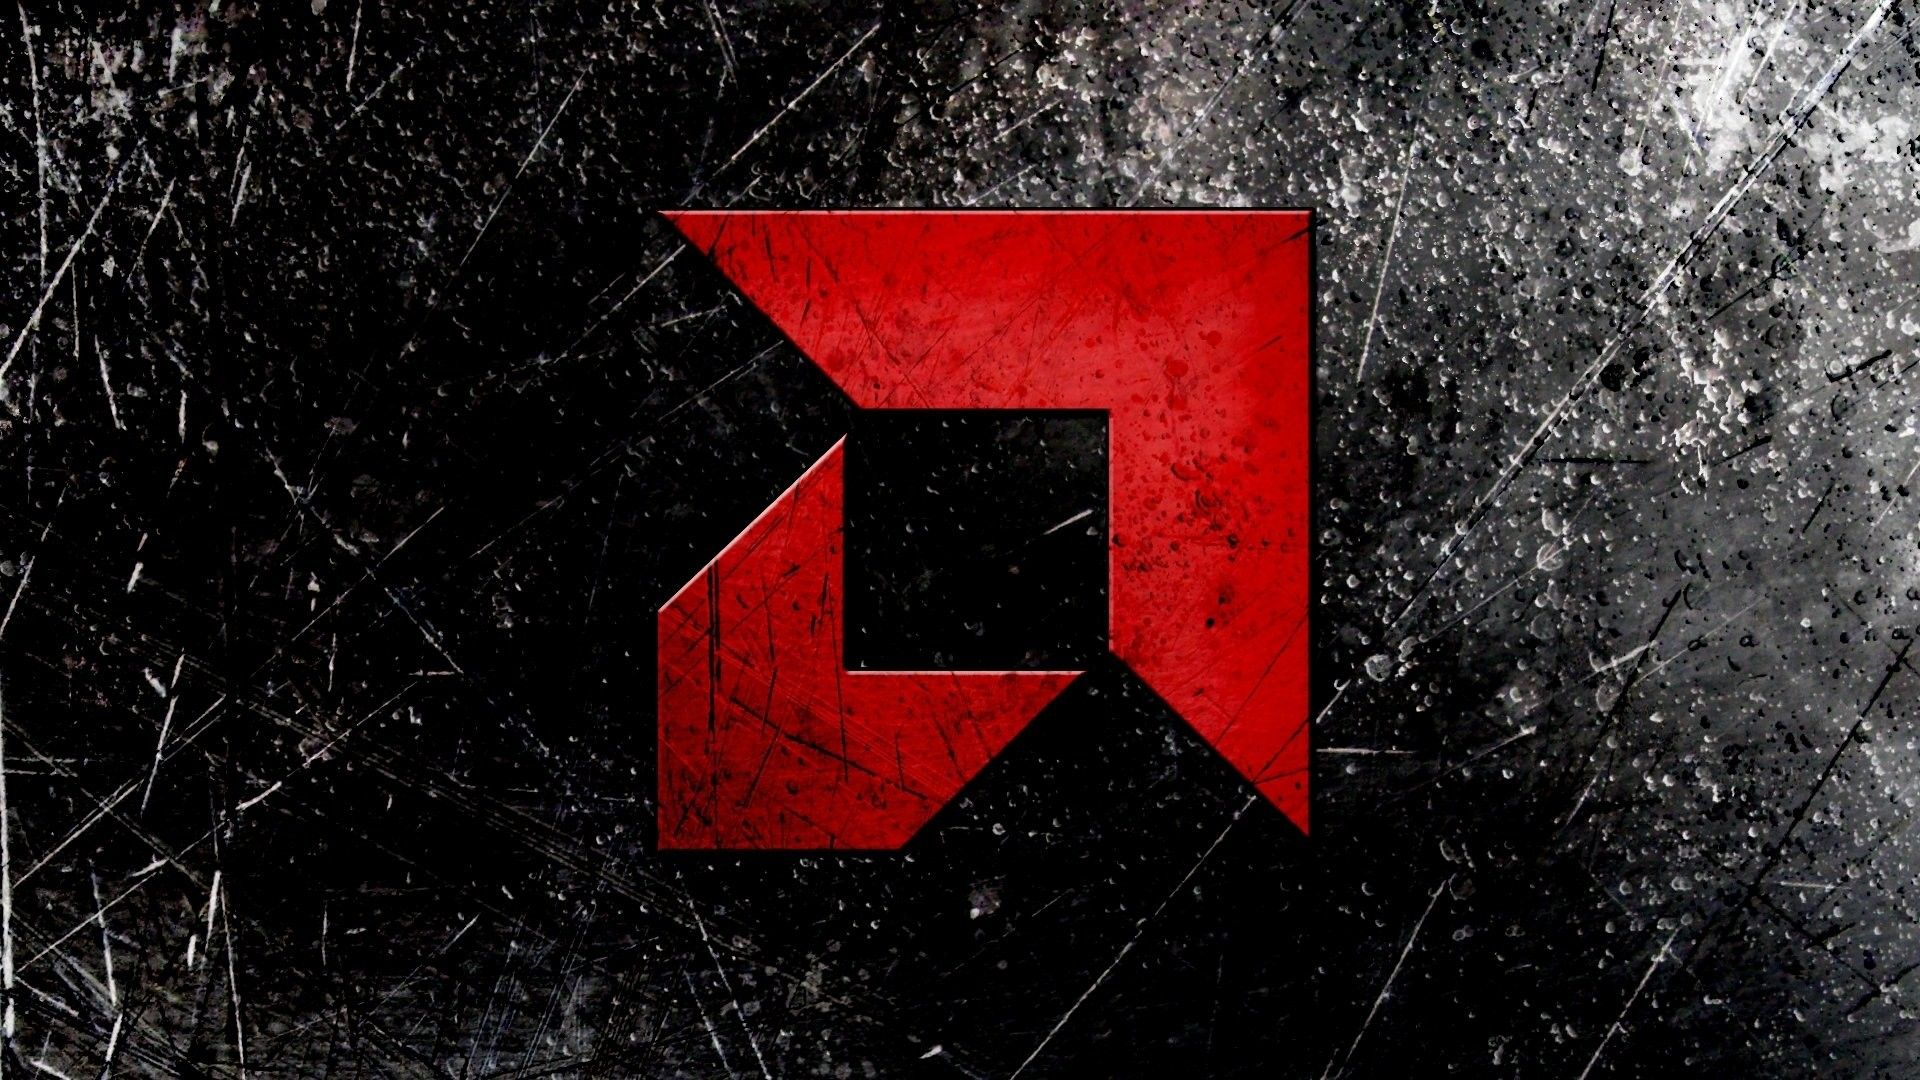 Amd Collection See All Wallpapers Wallpapers Background Internet Graphic Card Gaming Wallpapers Red Wallpaper